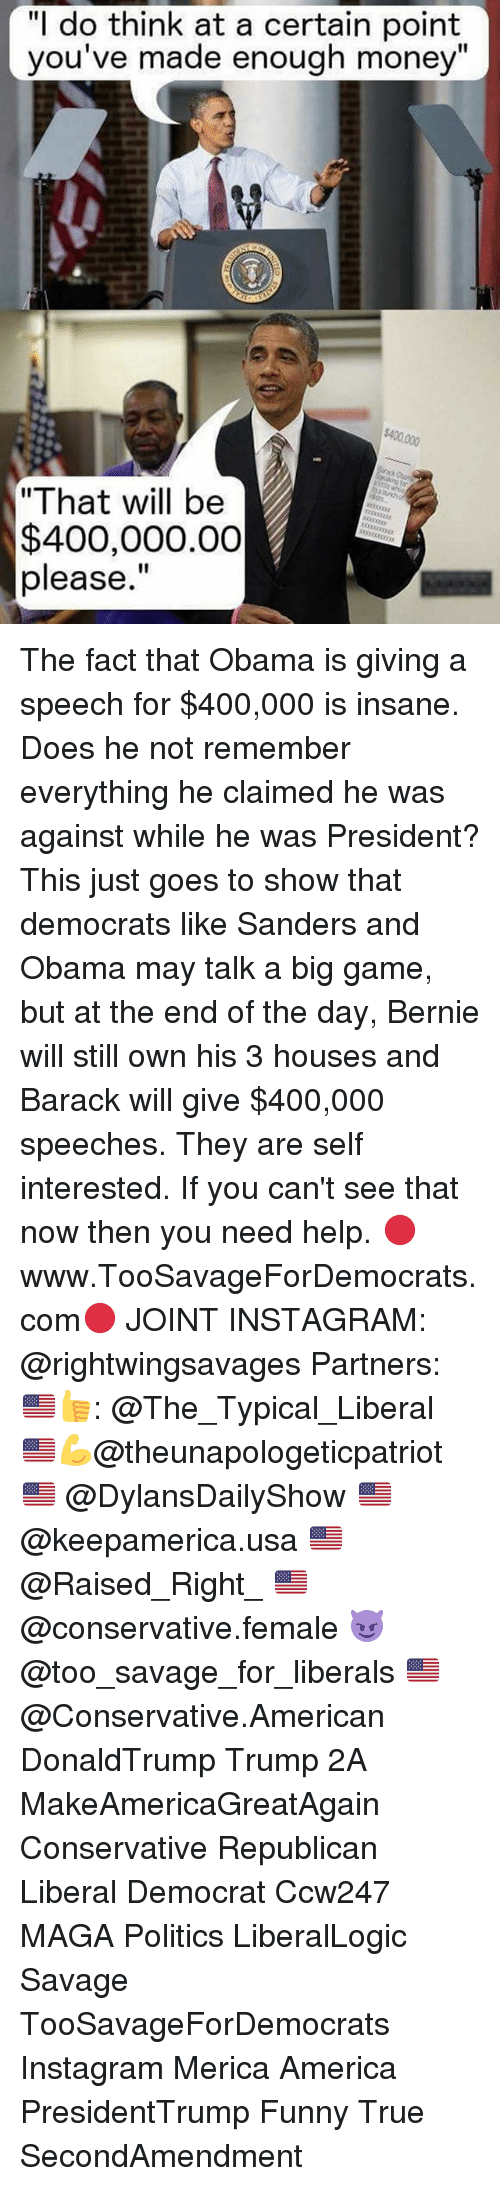 "America, Funny, and Instagram: ""I do think at a certain point  you've made enough money""  $400,000  ""That will be  $400,000.00  please."" The fact that Obama is giving a speech for $400,000 is insane. Does he not remember everything he claimed he was against while he was President? This just goes to show that democrats like Sanders and Obama may talk a big game, but at the end of the day, Bernie will still own his 3 houses and Barack will give $400,000 speeches. They are self interested. If you can't see that now then you need help. 🔴www.TooSavageForDemocrats.com🔴 JOINT INSTAGRAM: @rightwingsavages Partners: 🇺🇸👍: @The_Typical_Liberal 🇺🇸💪@theunapologeticpatriot 🇺🇸 @DylansDailyShow 🇺🇸 @keepamerica.usa 🇺🇸@Raised_Right_ 🇺🇸@conservative.female 😈 @too_savage_for_liberals 🇺🇸 @Conservative.American DonaldTrump Trump 2A MakeAmericaGreatAgain Conservative Republican Liberal Democrat Ccw247 MAGA Politics LiberalLogic Savage TooSavageForDemocrats Instagram Merica America PresidentTrump Funny True SecondAmendment"